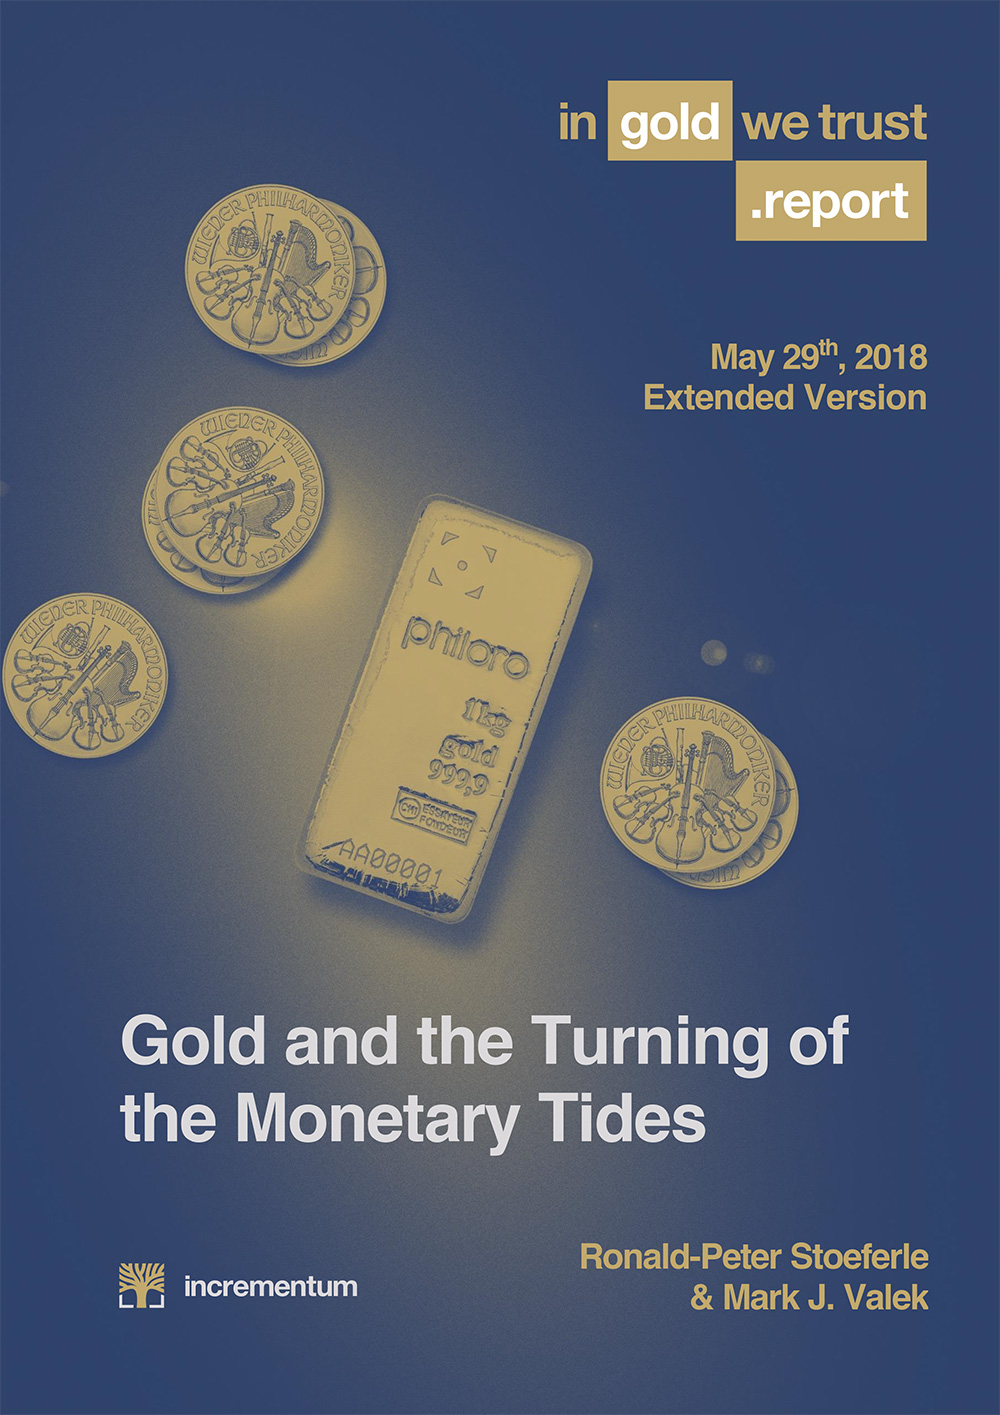 In-Gold-we-Trust-2018-Extended-version-english-1